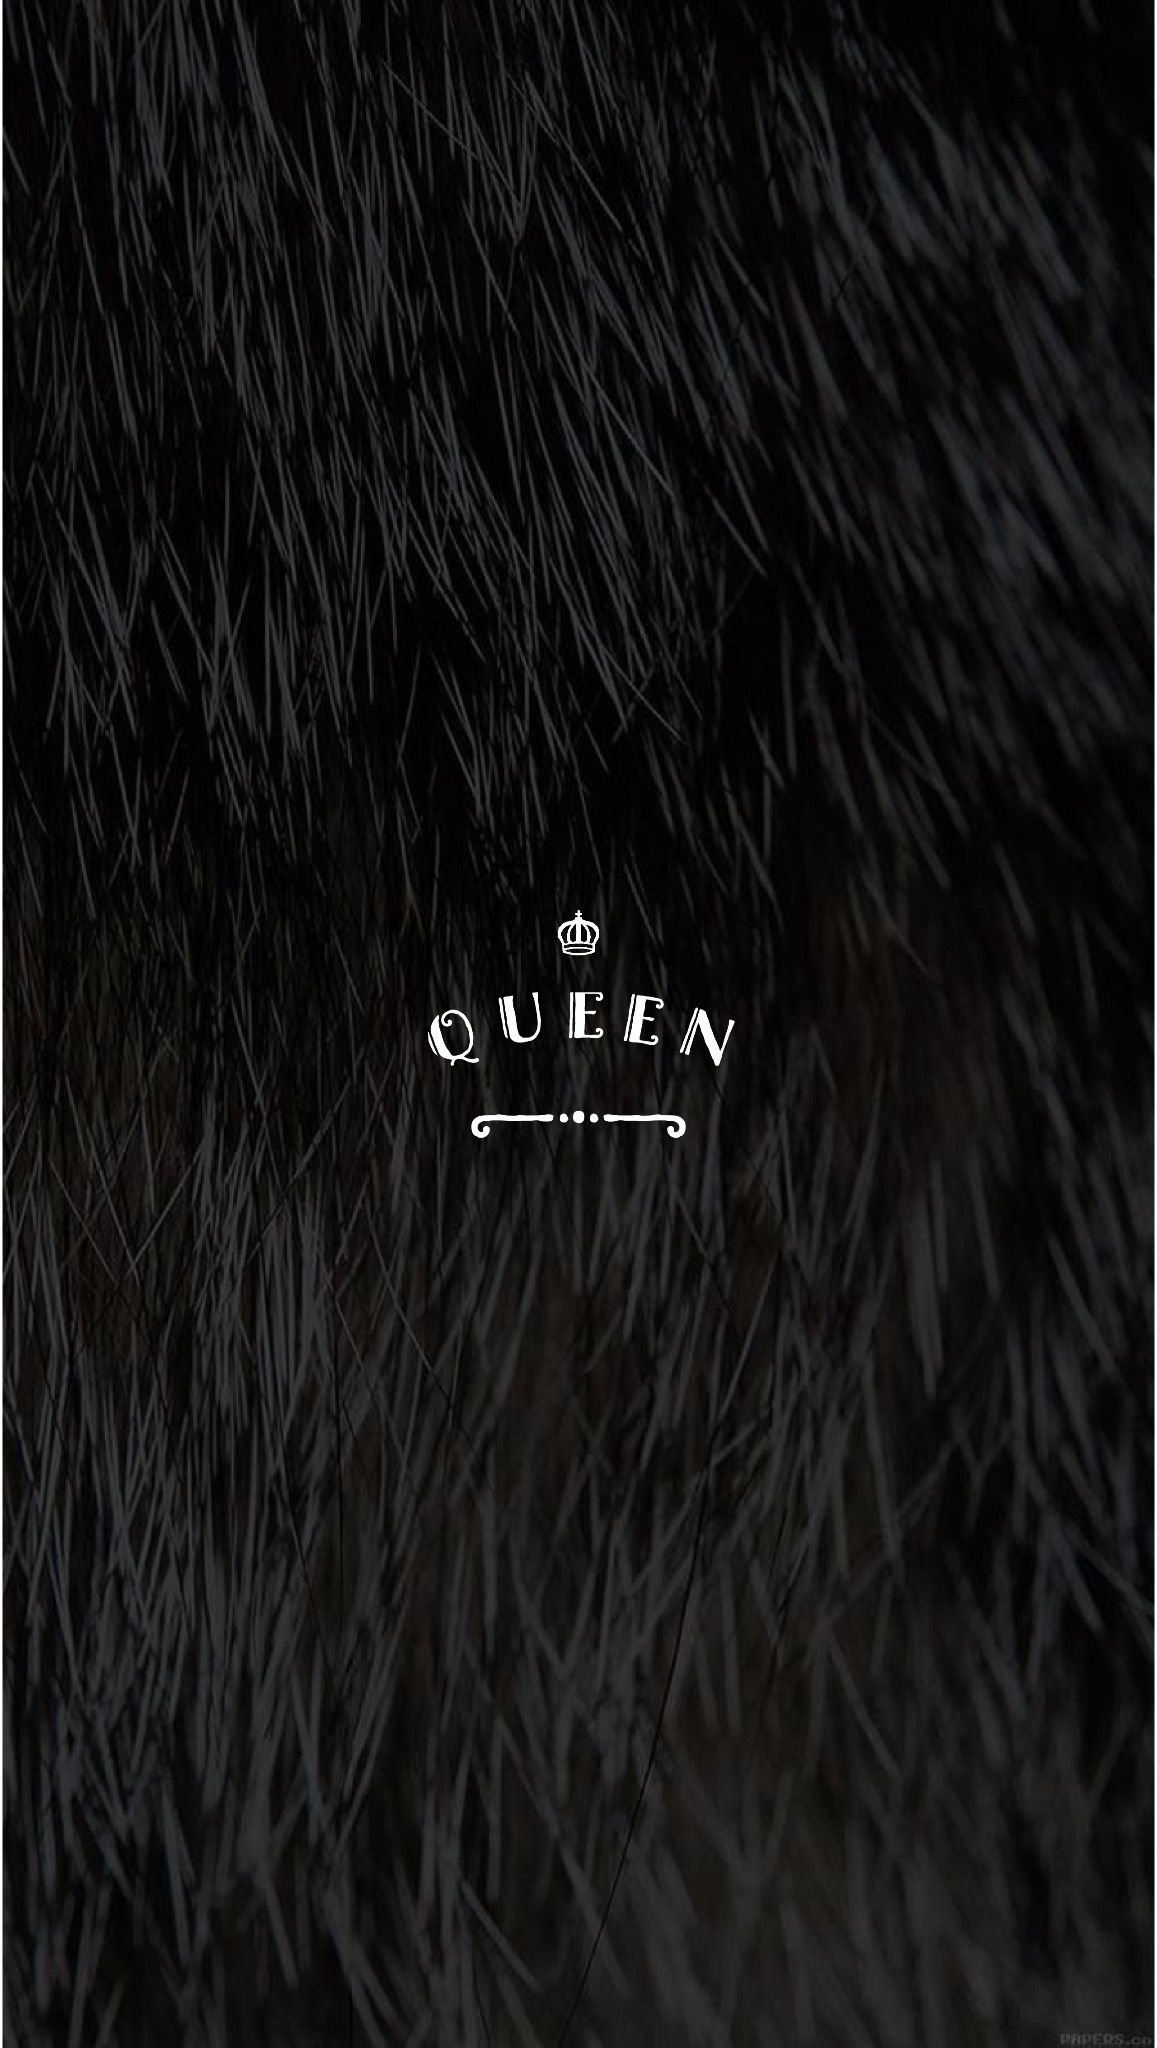 Black Faux Fur Pretty Positivity Queen Iphone Mobile Wallpaper By